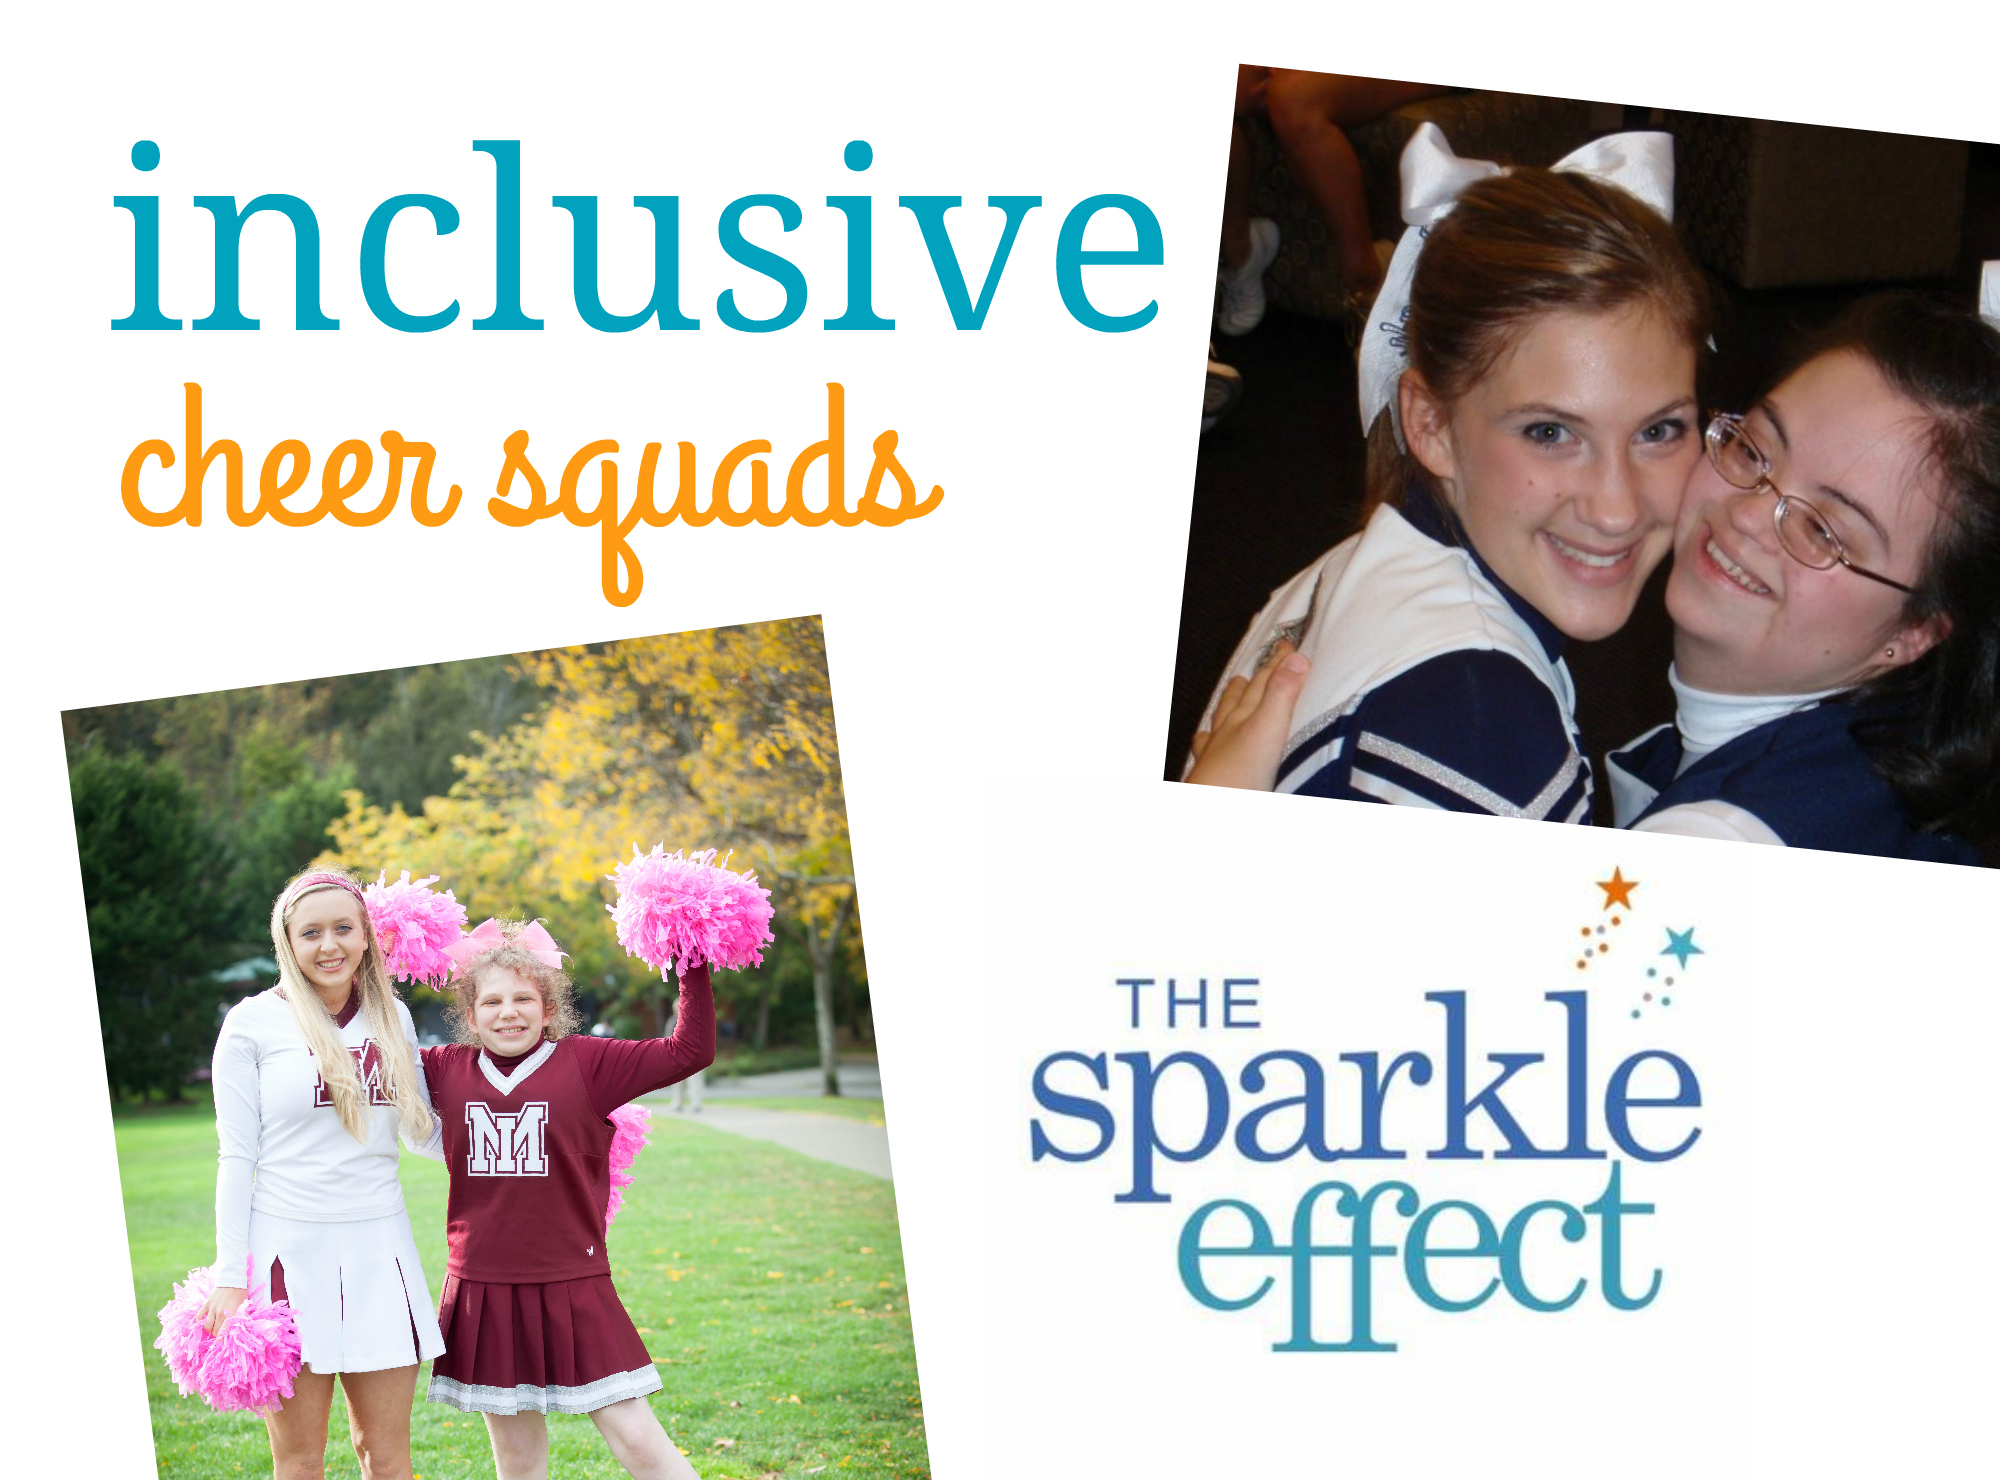 sparkle effect inclusive cheer squads